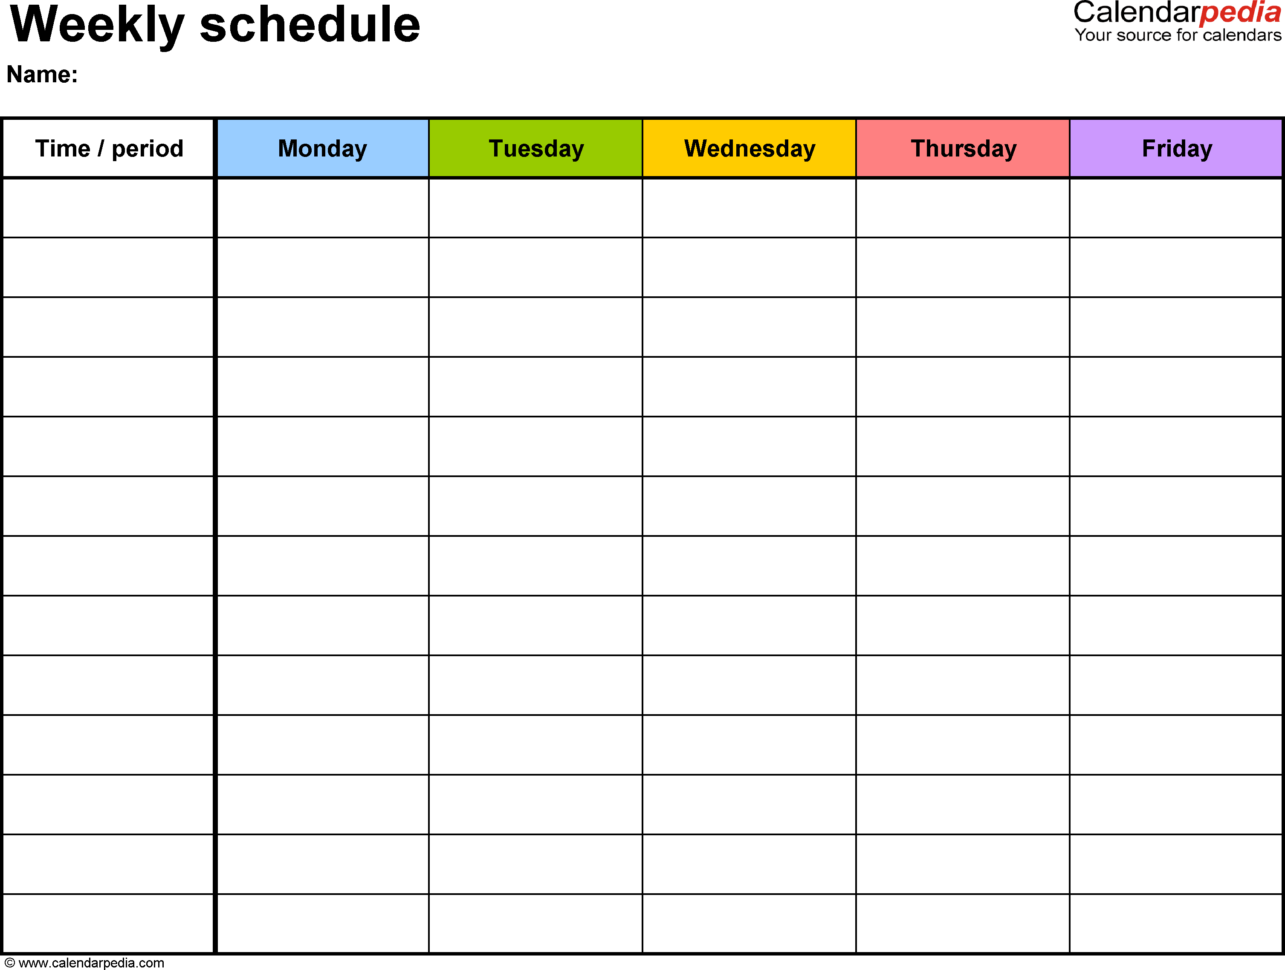 Job Scheduling Spreadsheet Intended For Free Weekly Schedule Templates For Excel  18 Templates